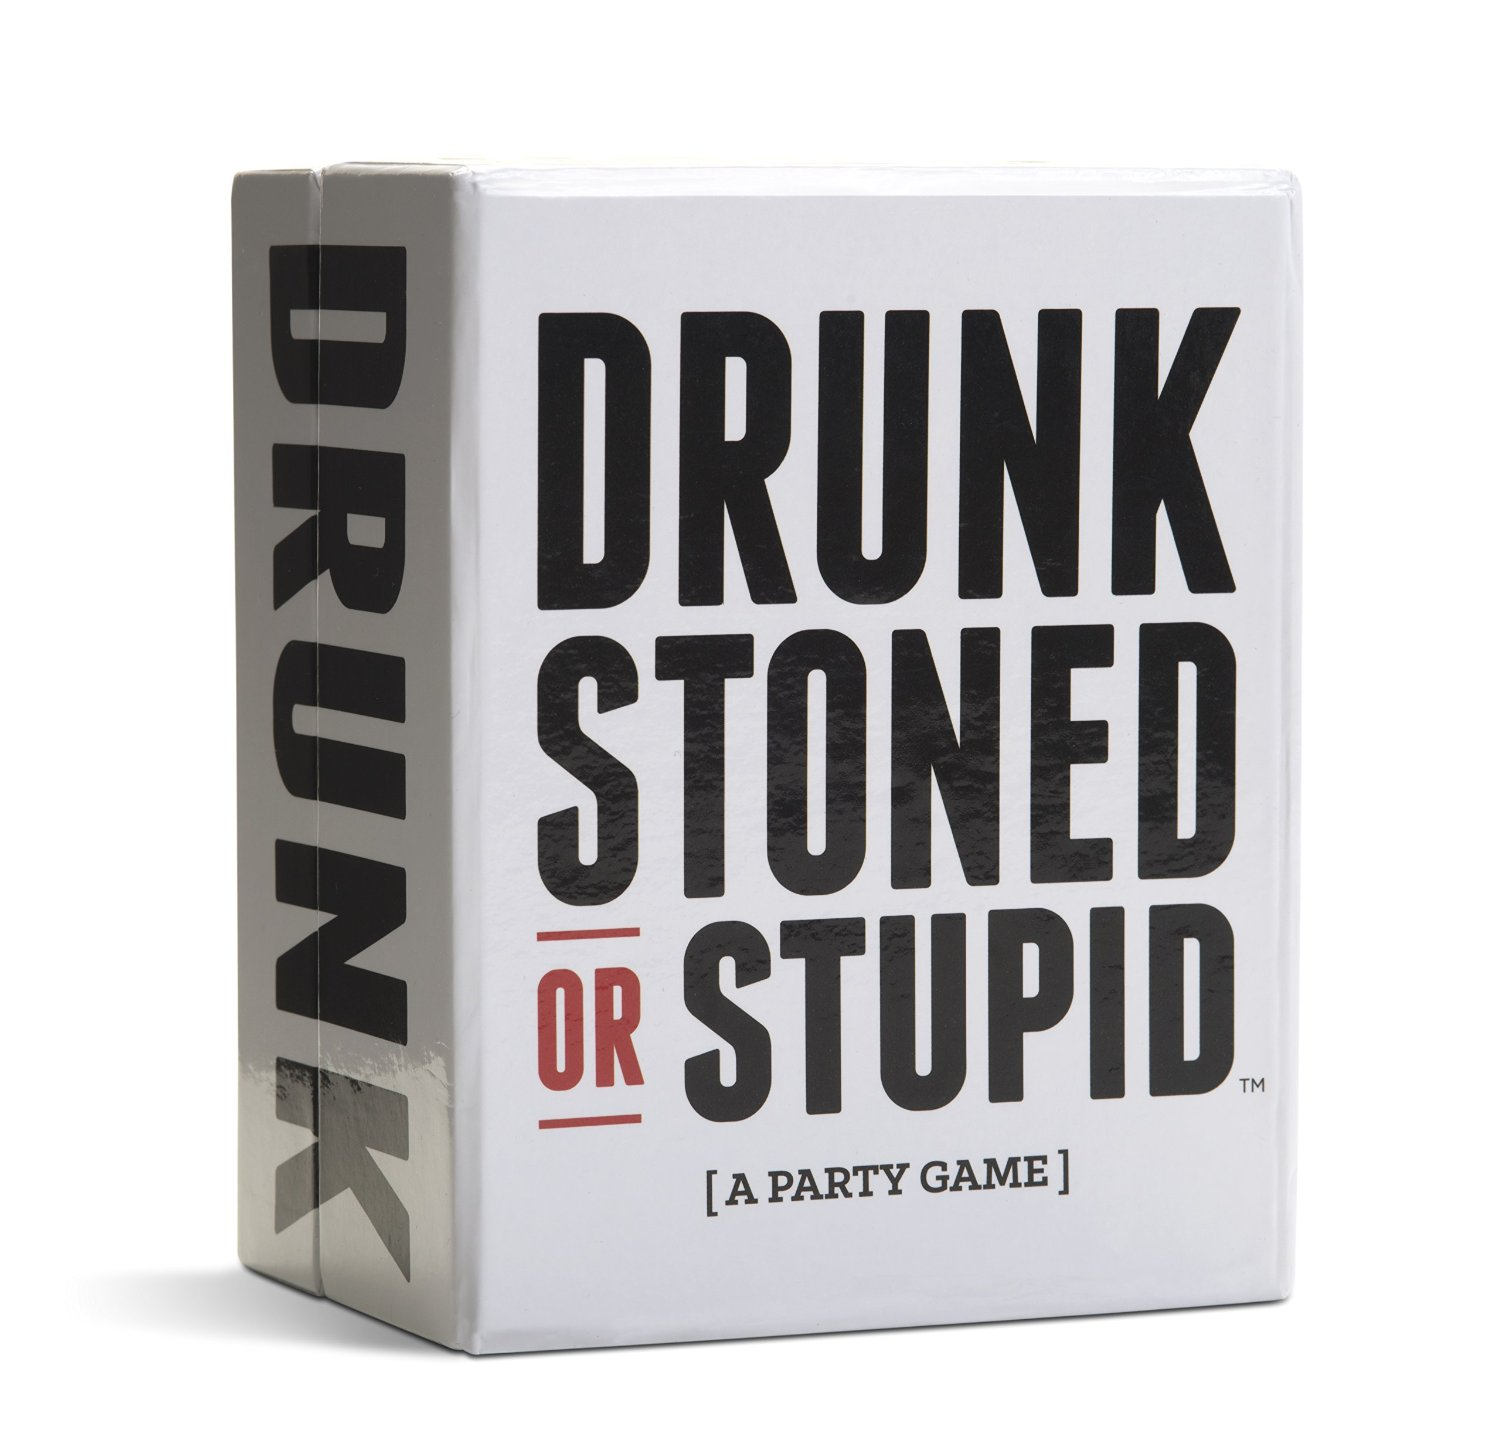 games-similar-cards-against-humanity-drunk-stoned-stupid